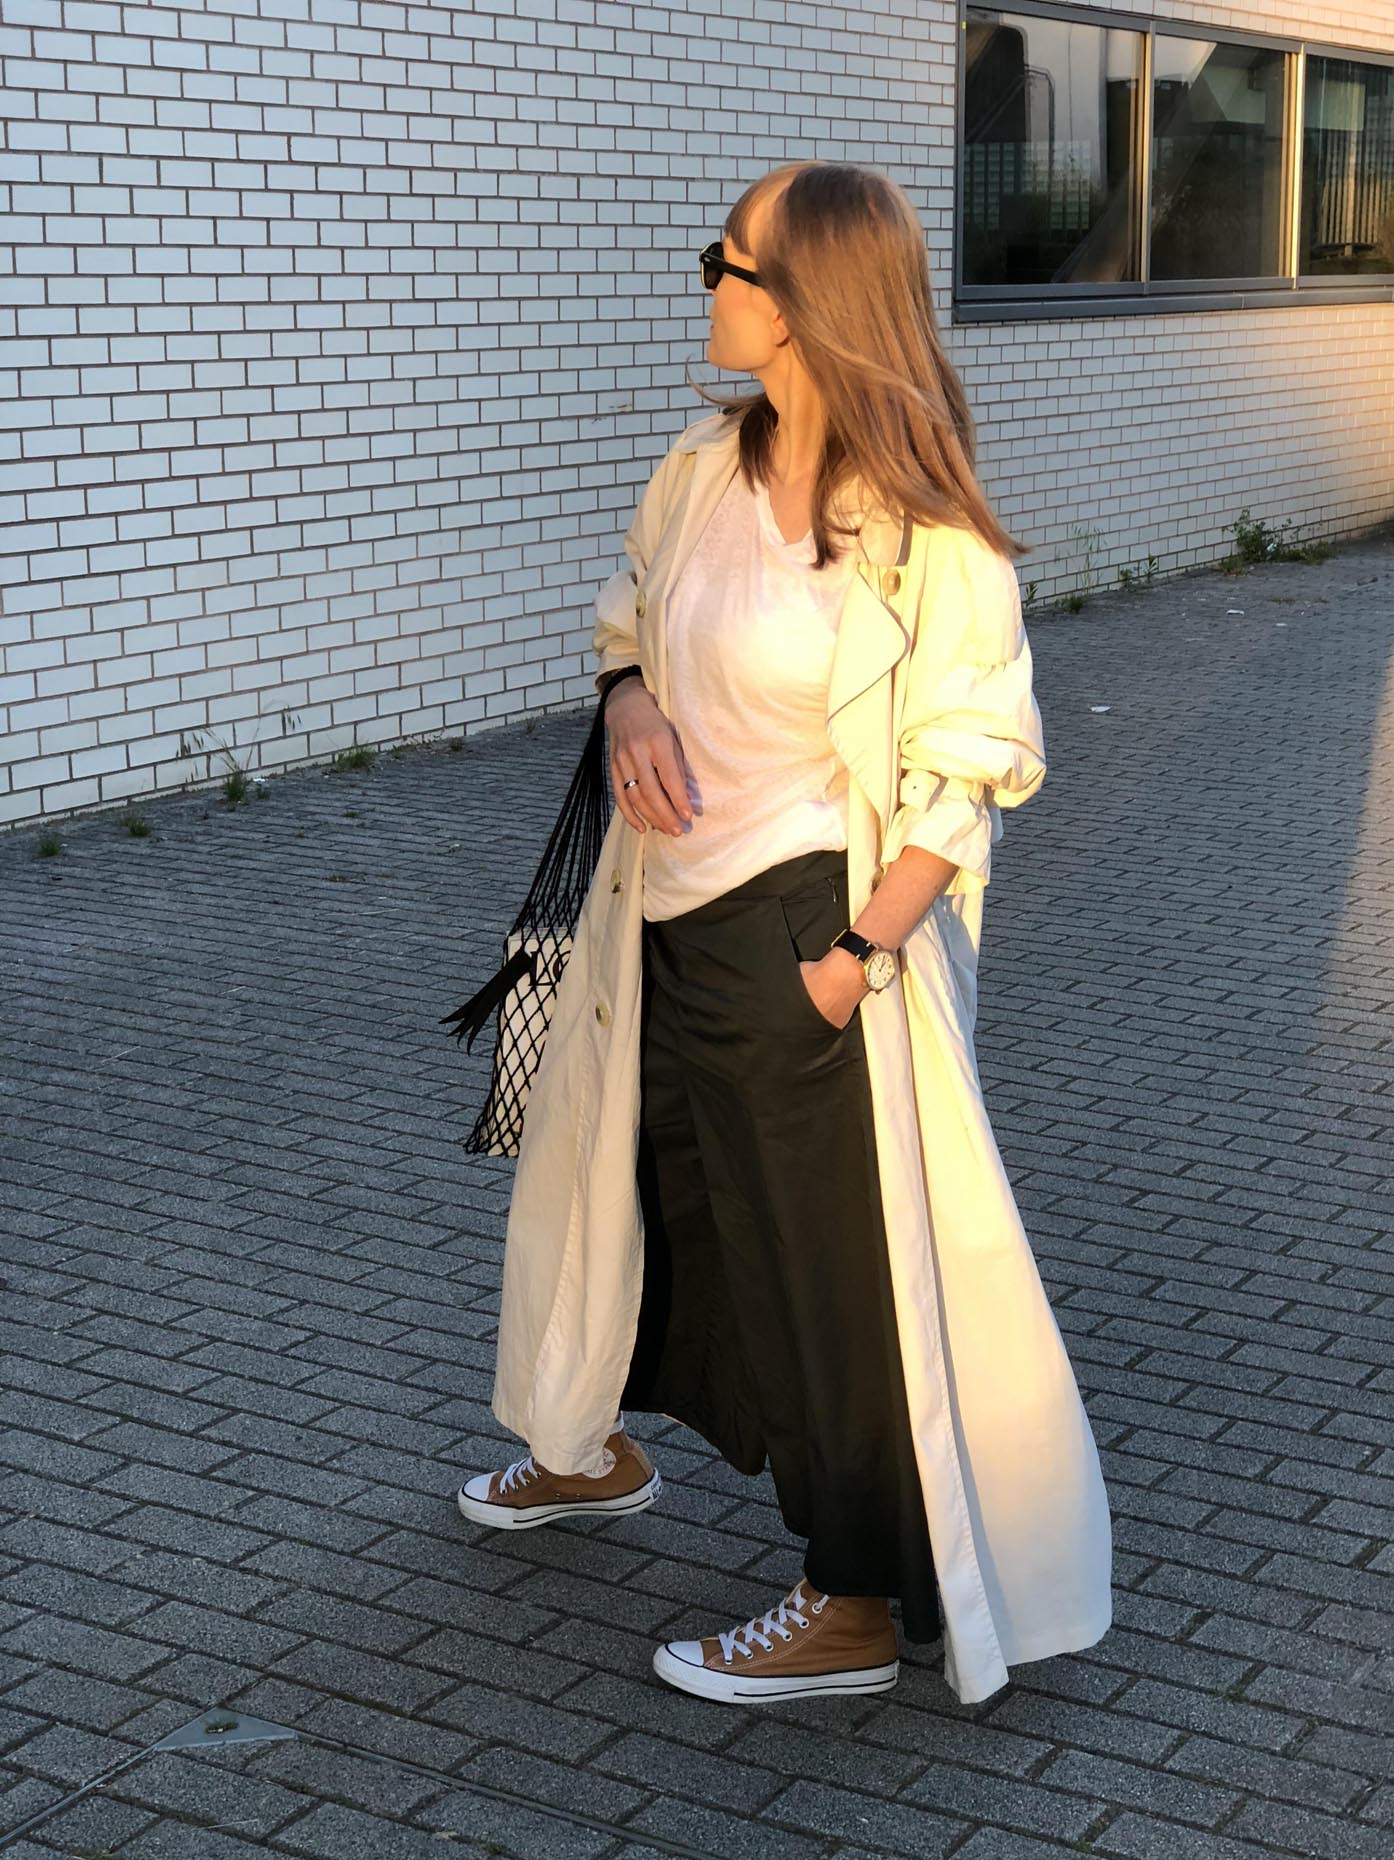 fashion art media, sneakers - Converse All Star, trench coat - Burberry vintage, culottes pants - COS, shirt - Zara, bag - Ania Kuczyńska, sunglasses - MOSCOT, watch - Hirwill Watches photo by longsoryshort.pl